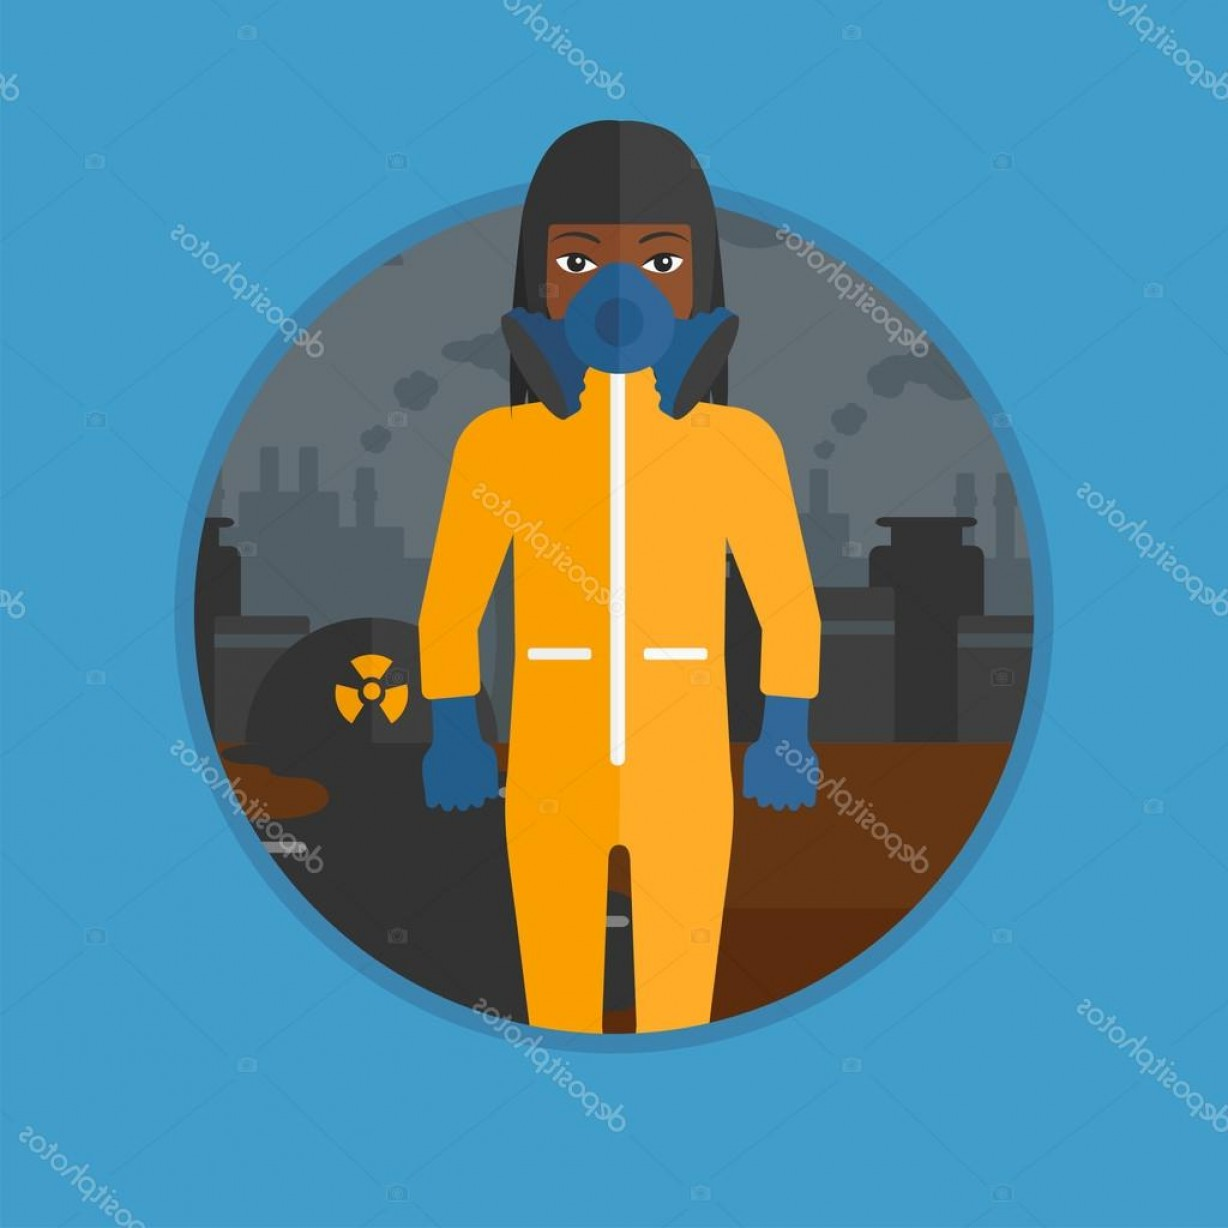 Chewbacca Vector Flat Design: Stock Illustration Woman In Radiation Protective Suit